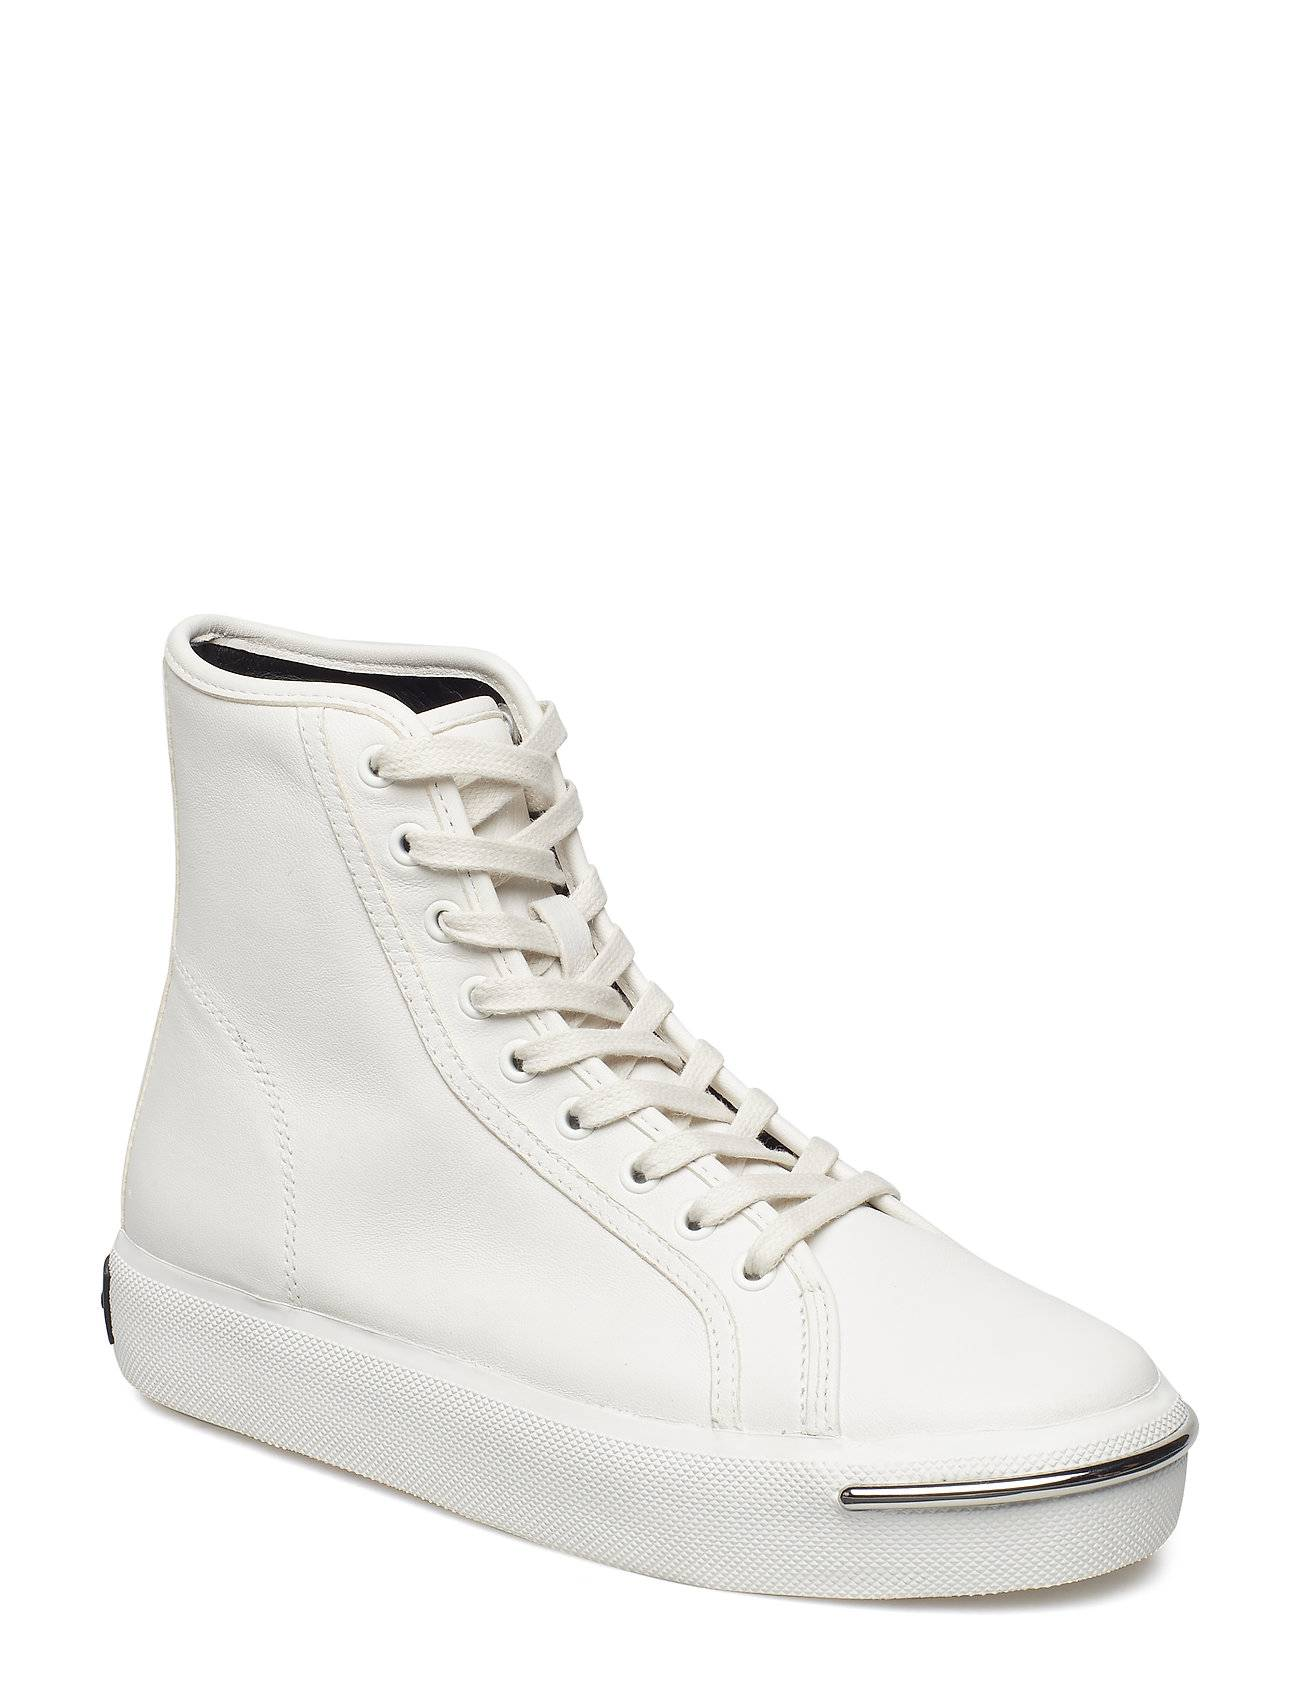 Alexander Wang Pia White Leather